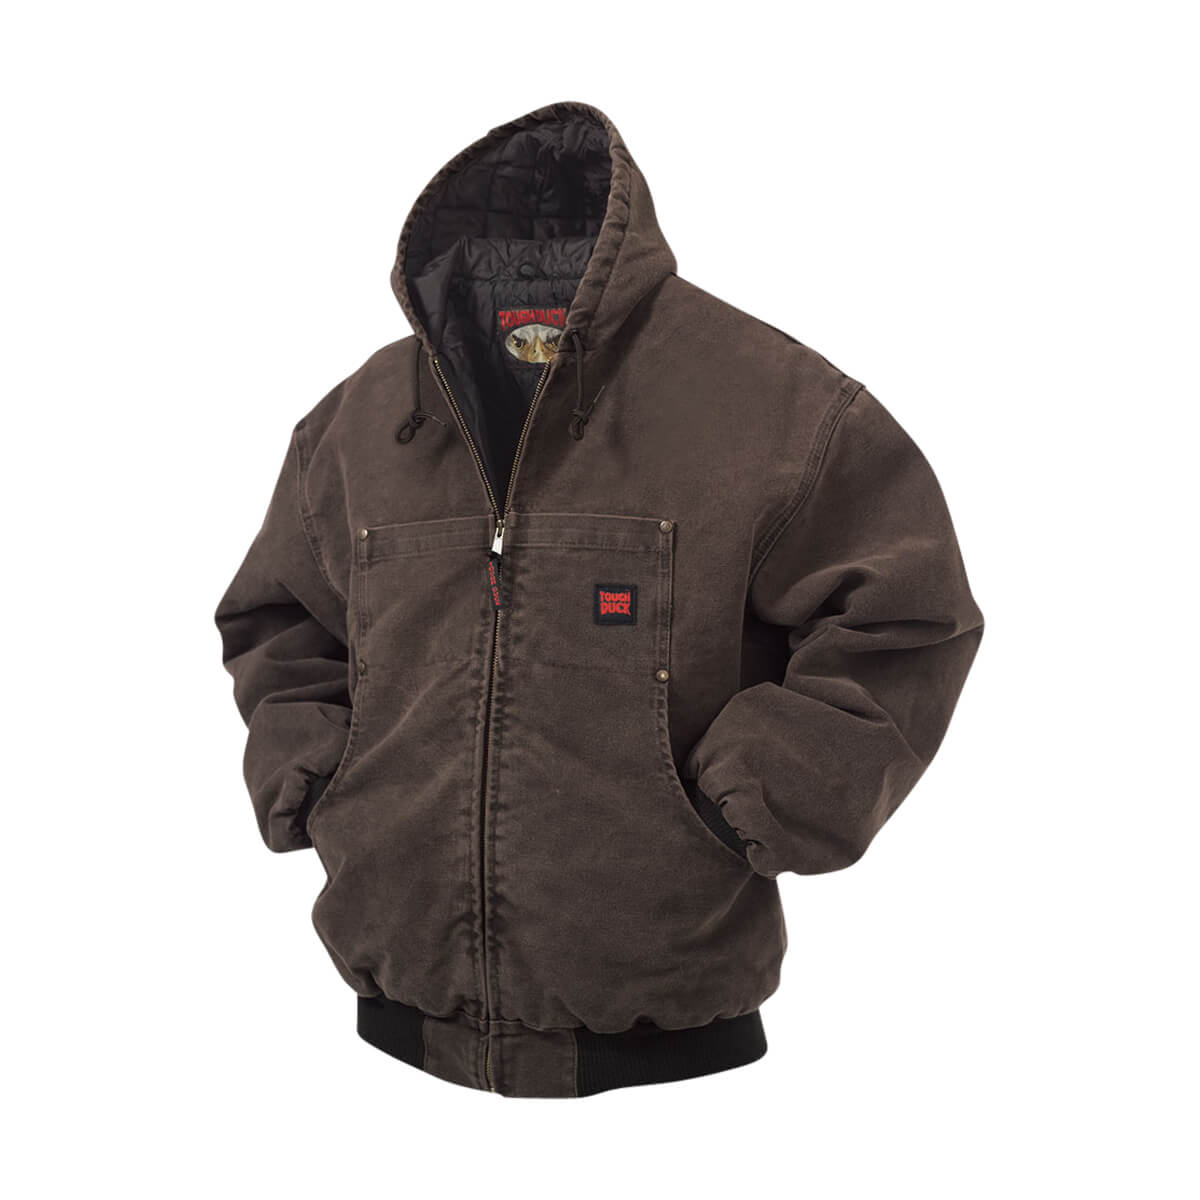 Tough Duck Washed Hooded Bomber Jacket